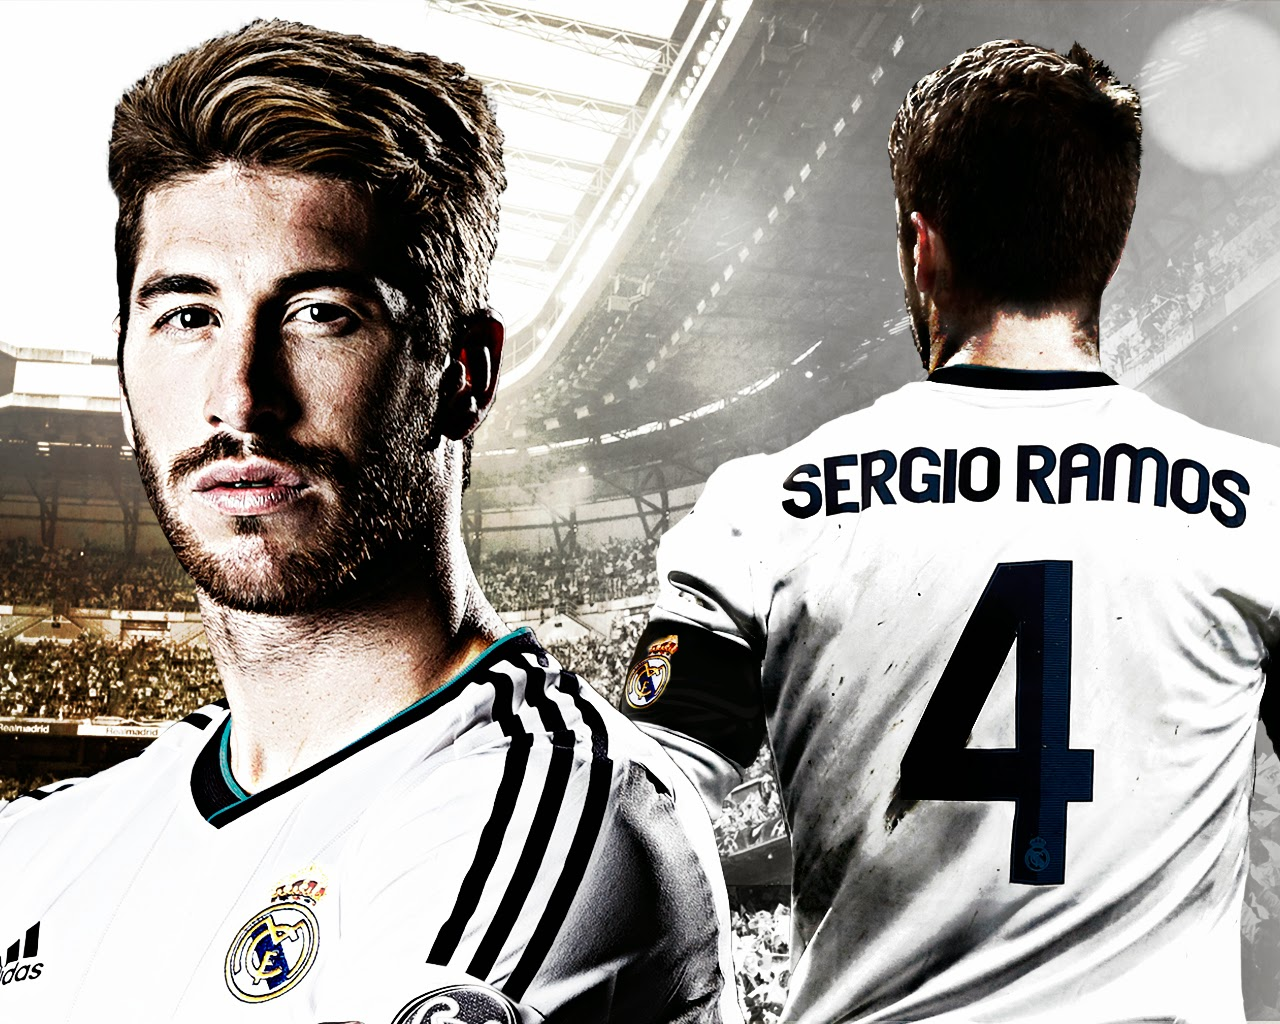 sergio ramos hd images - photo #2